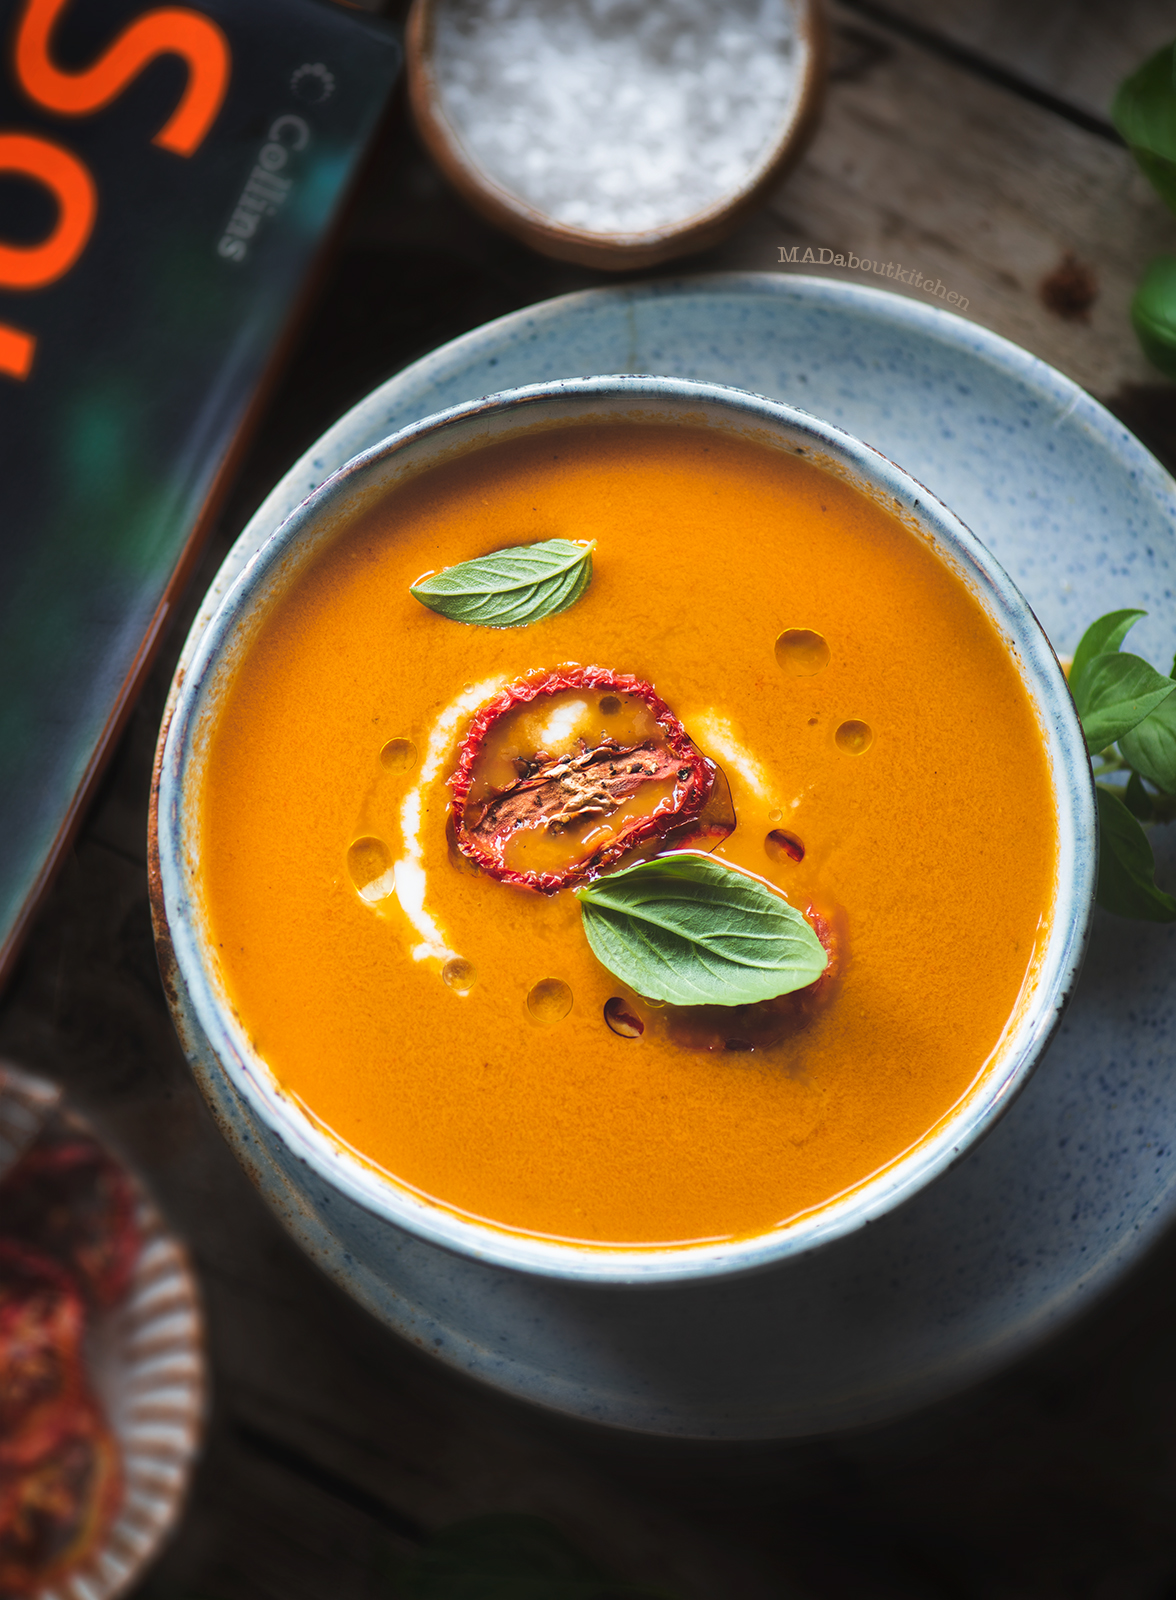 Roasted Tomato Turmeric soup literally takes tossing ingredients on a pan and roasting it in the oven, blending and serving & it is as simple as that.